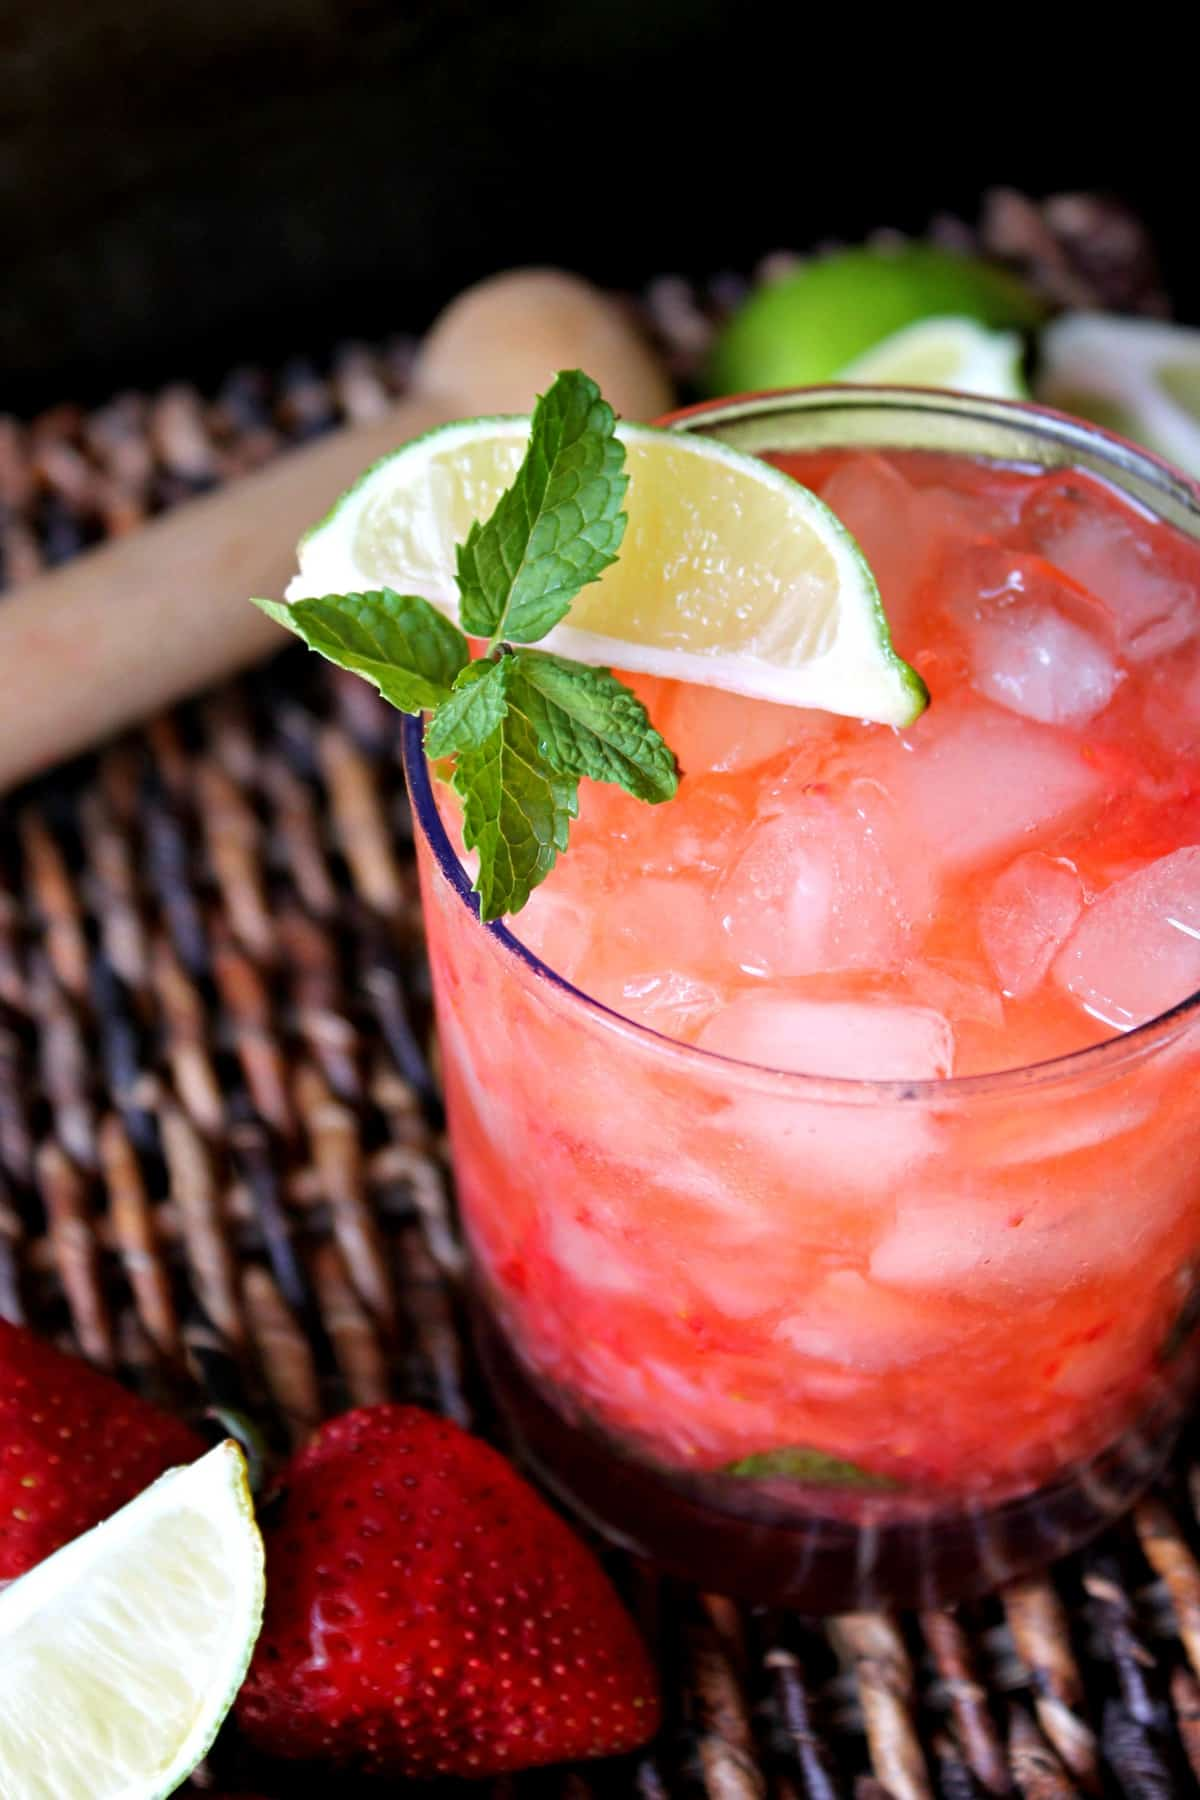 Strawberry Mojitos! Sweet and refreshing, these cocktails are a great addition to summer menus! The flavors of fresh strawberries, lime and mint come together to create a berry-infused version of a delicious classic.